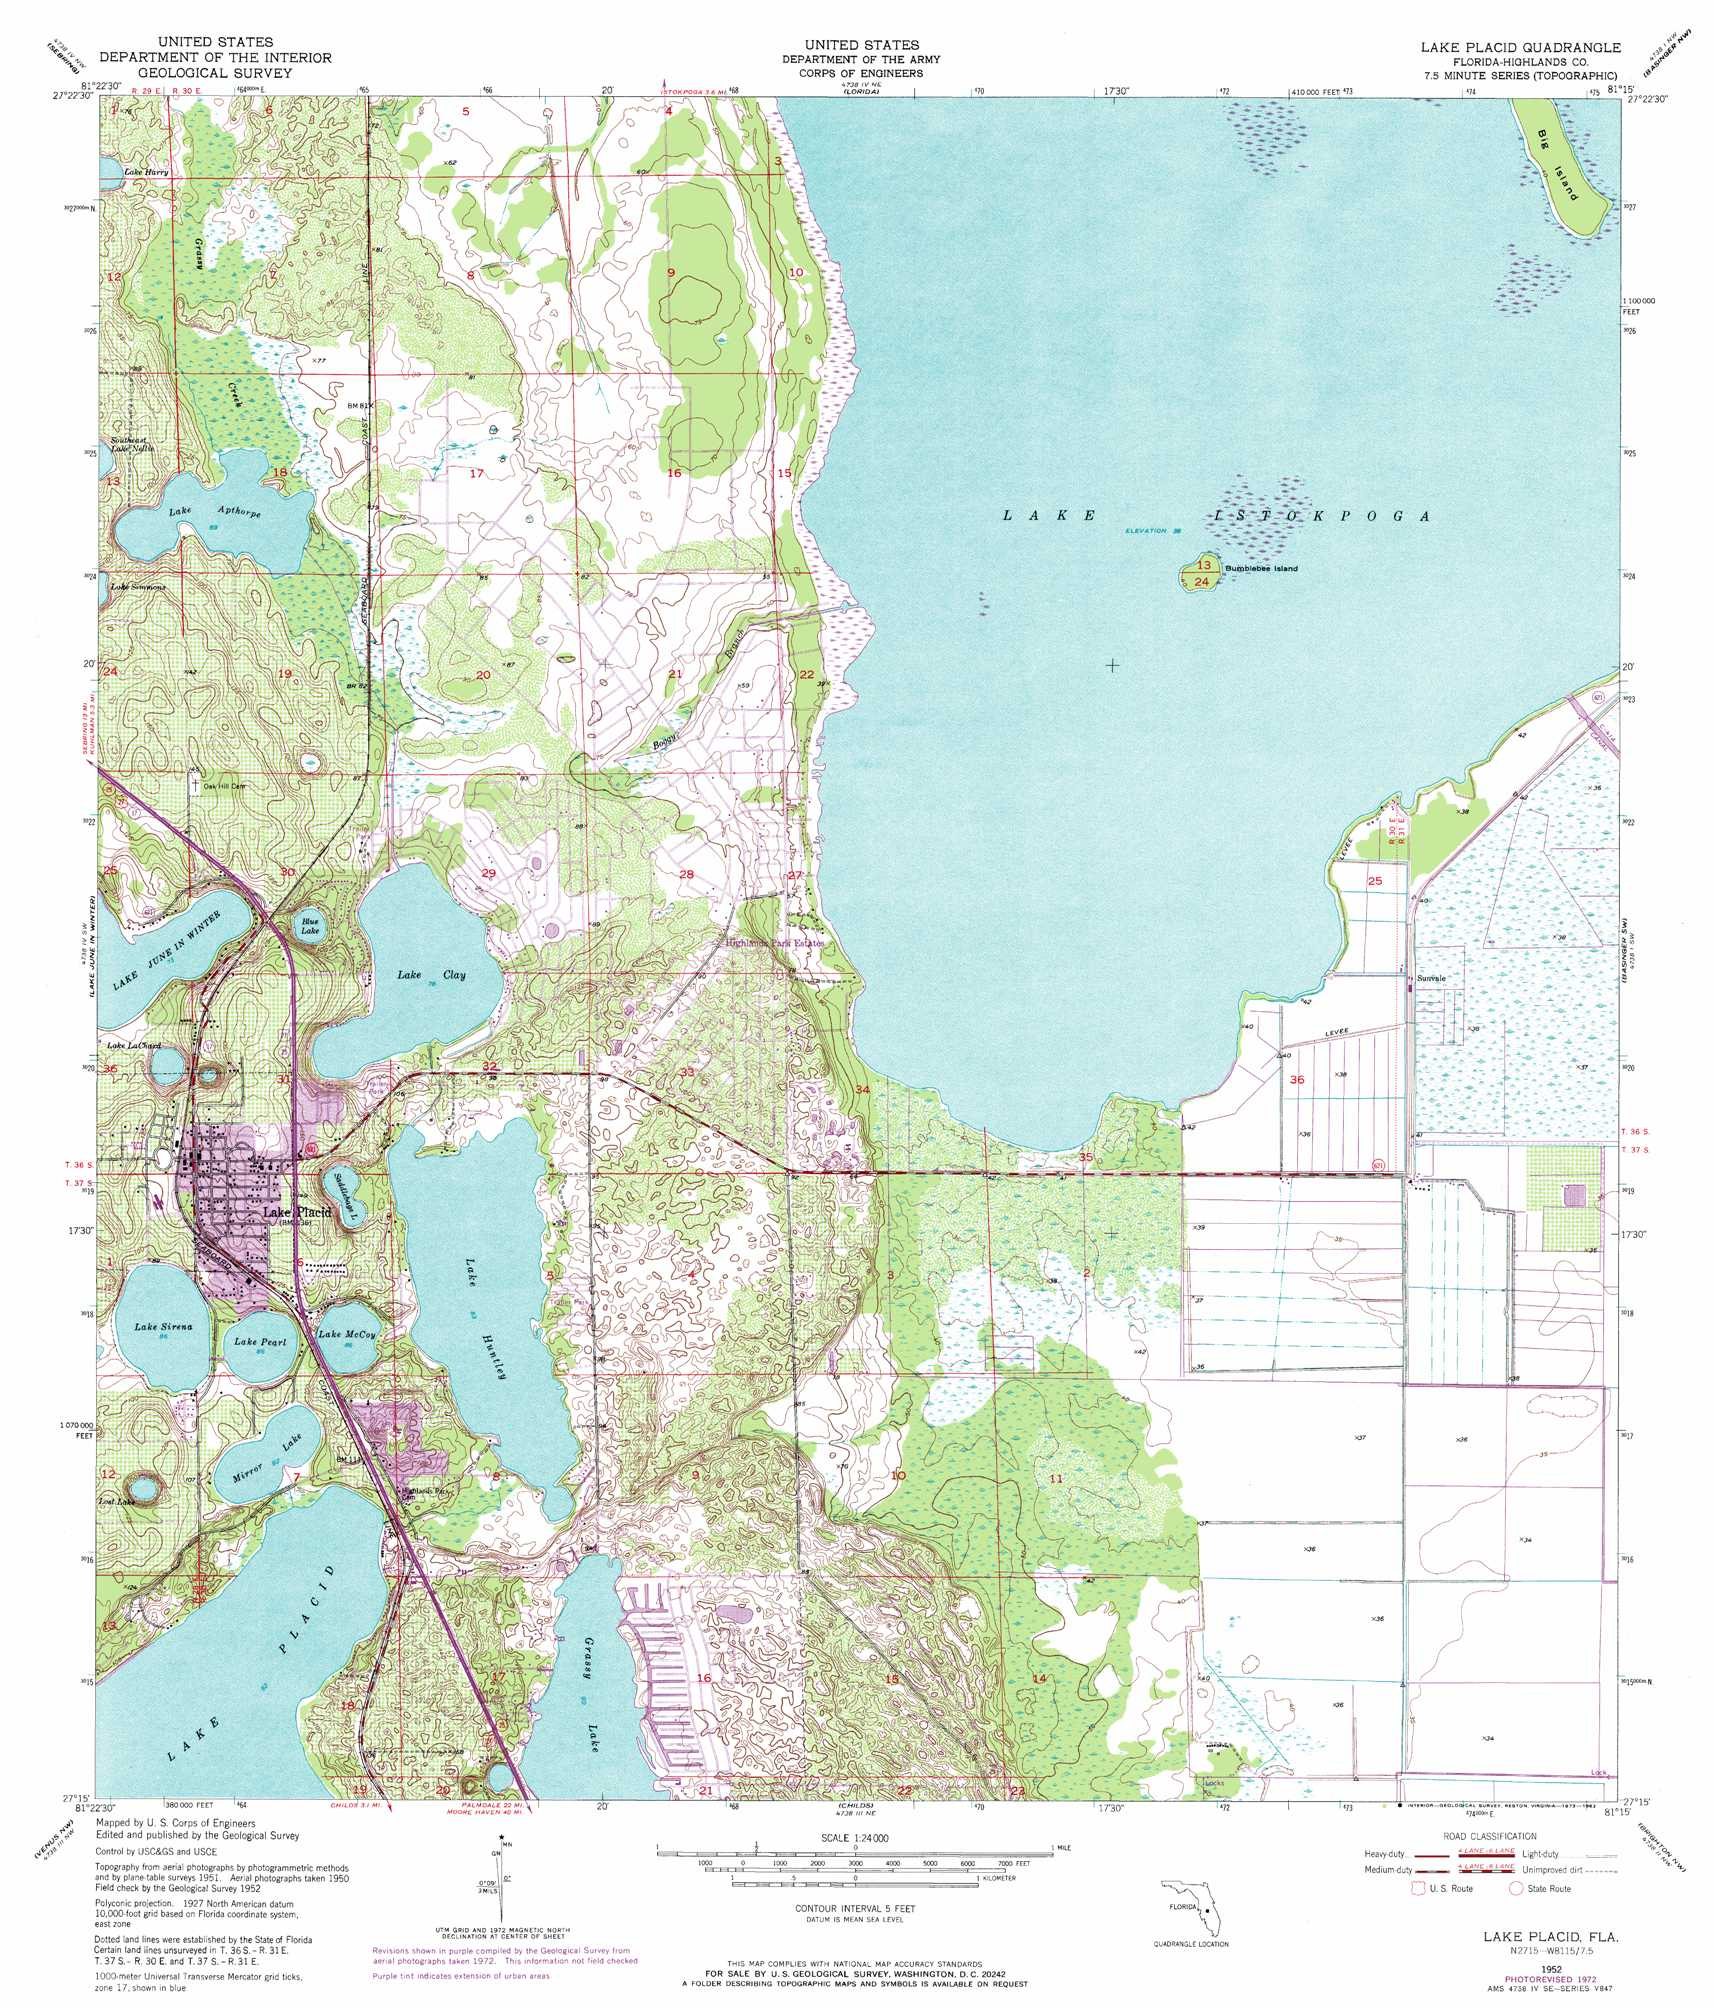 Lake Placid topographic map, FL - USGS Topo Quad 27081c3